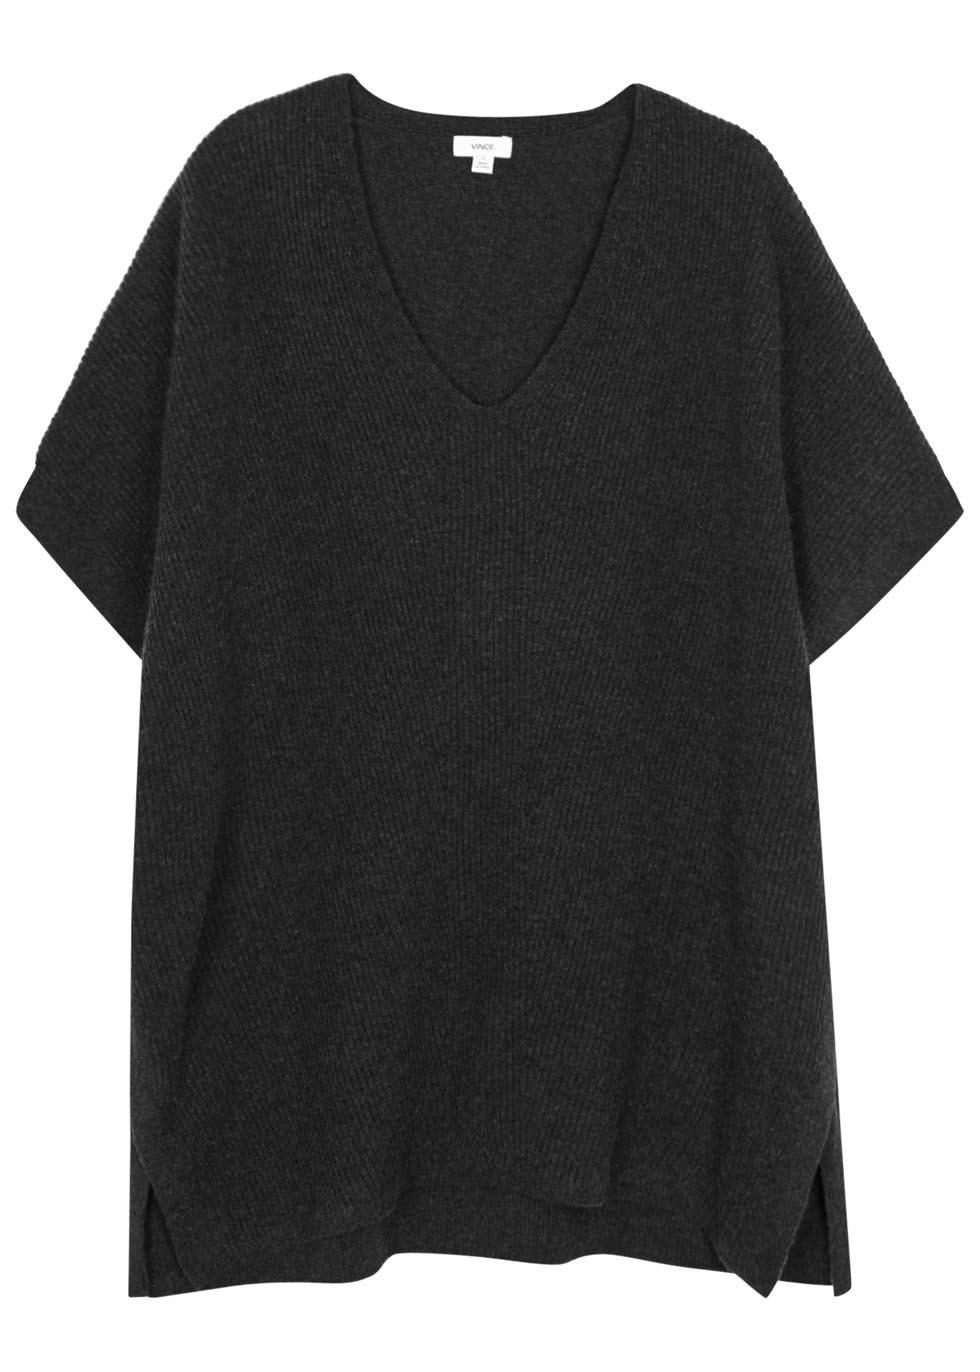 Charcoal Ribbed Front Wool Blend Top - neckline: v-neck; pattern: plain; predominant colour: charcoal; occasions: casual; length: standard; style: top; fibres: wool - mix; fit: loose; sleeve length: short sleeve; sleeve style: standard; pattern type: fabric; texture group: woven light midweight; season: s/s 2016